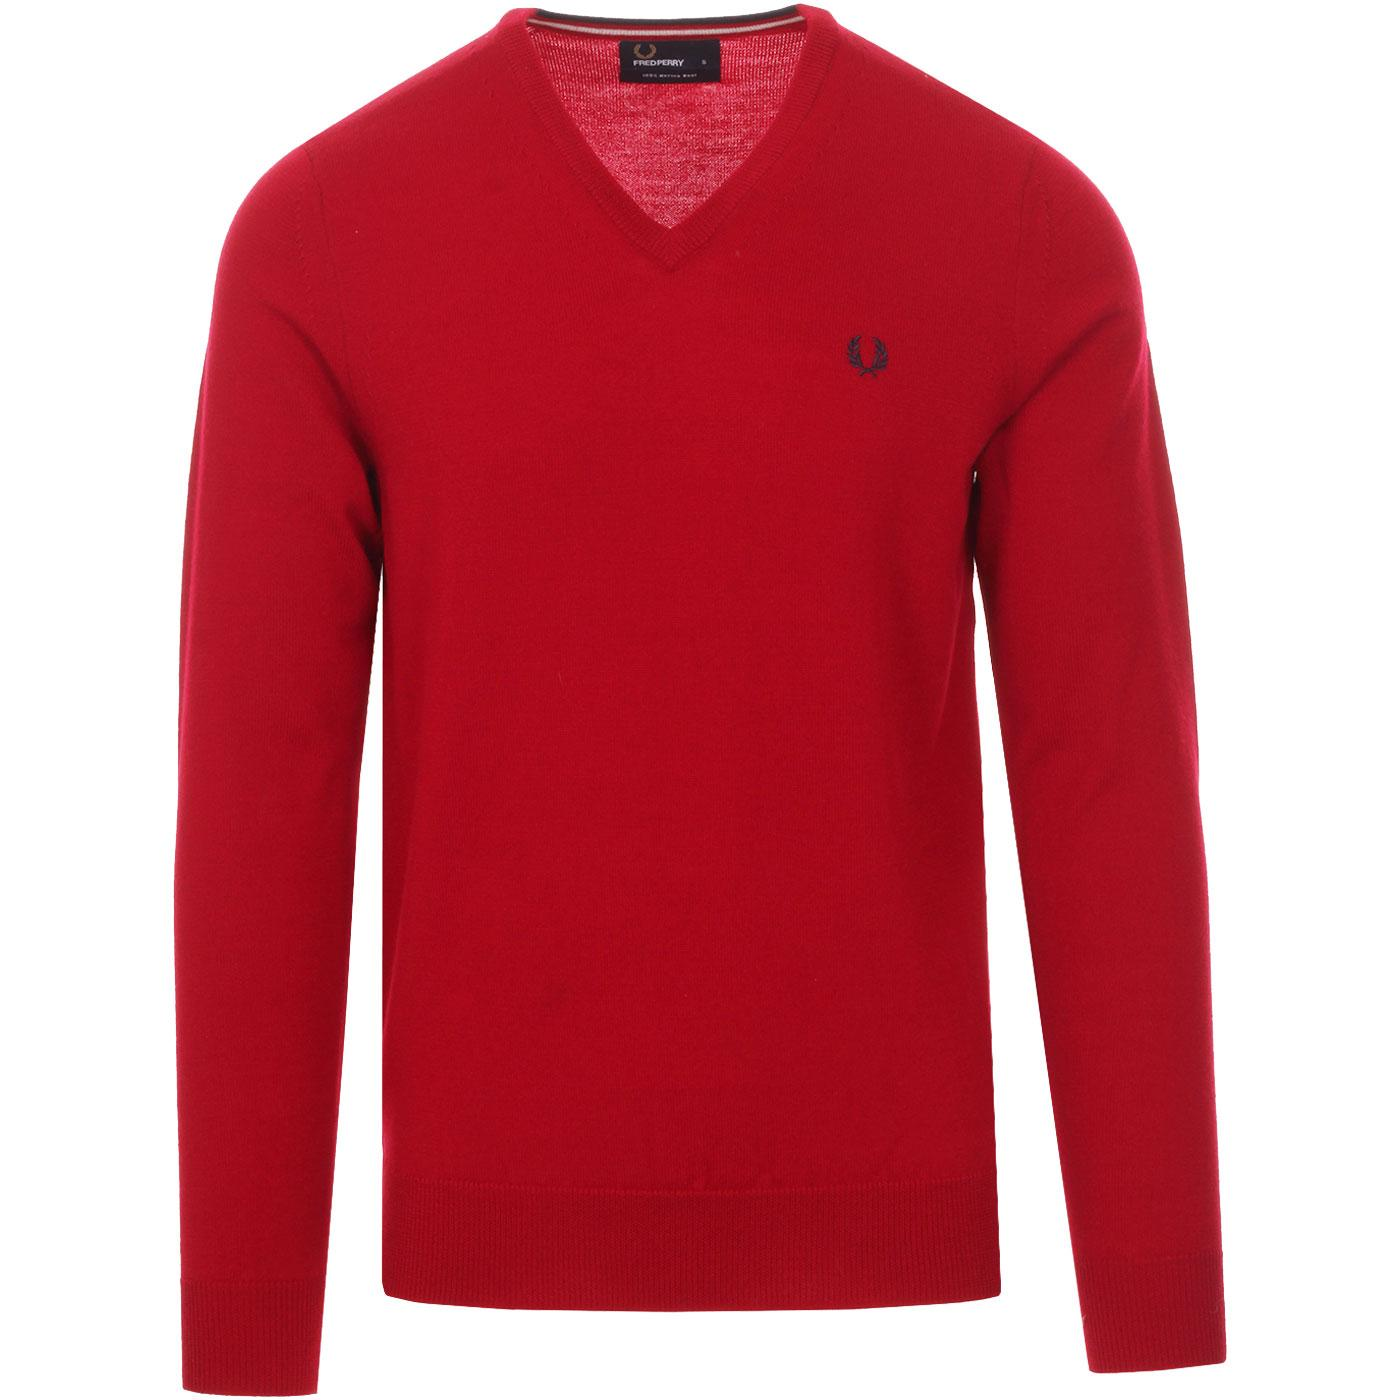 FRED PERRY Merino Wool Knitted V-Neck Jumper DR